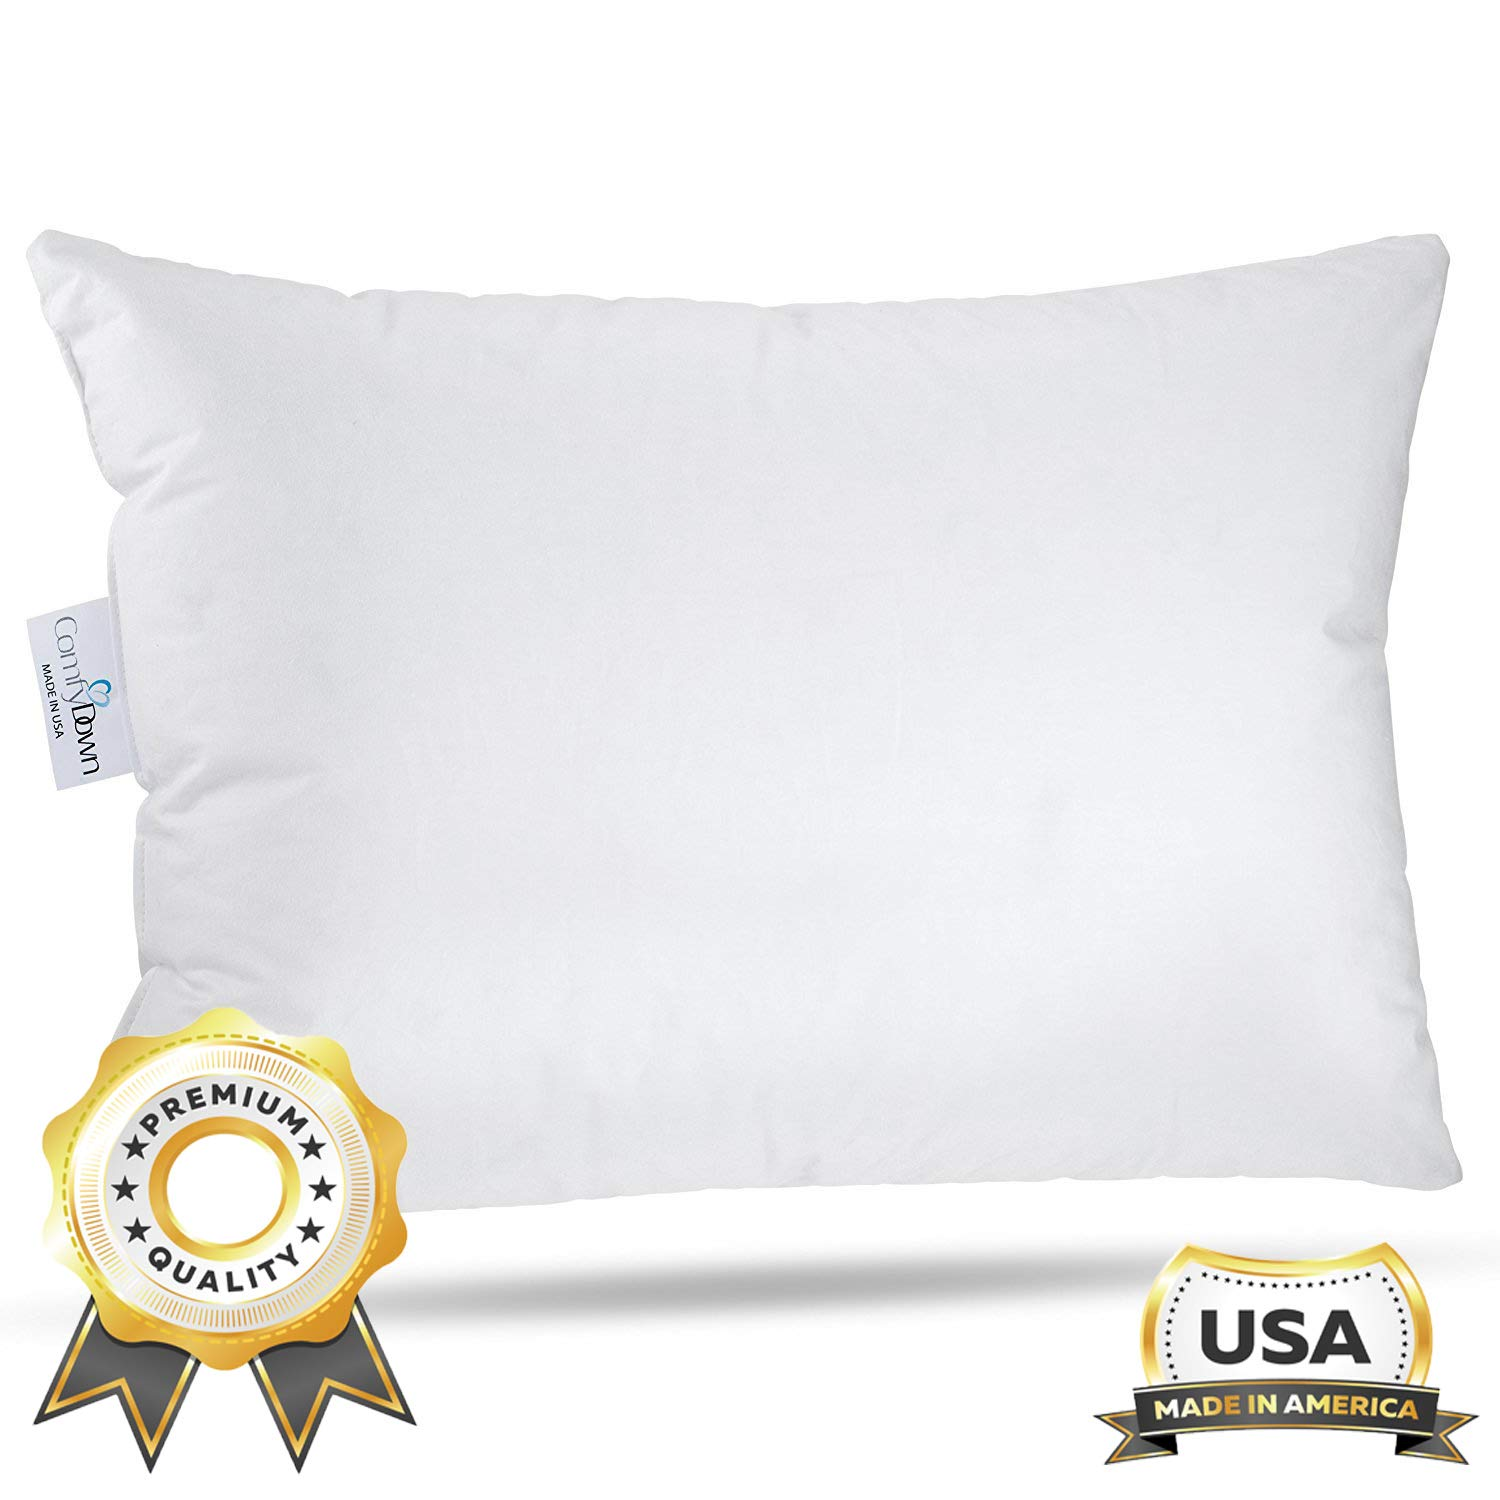 """ComfyDown Toddler Pillow - Machine Washable - 800 Fill Power Super Soft European Goose Down for Children Ages 18 Months to 6 Years - 300-Thread Count Egyptian Cotton Cover - Made in USA - 13""""x18"""" CDTP-1"""